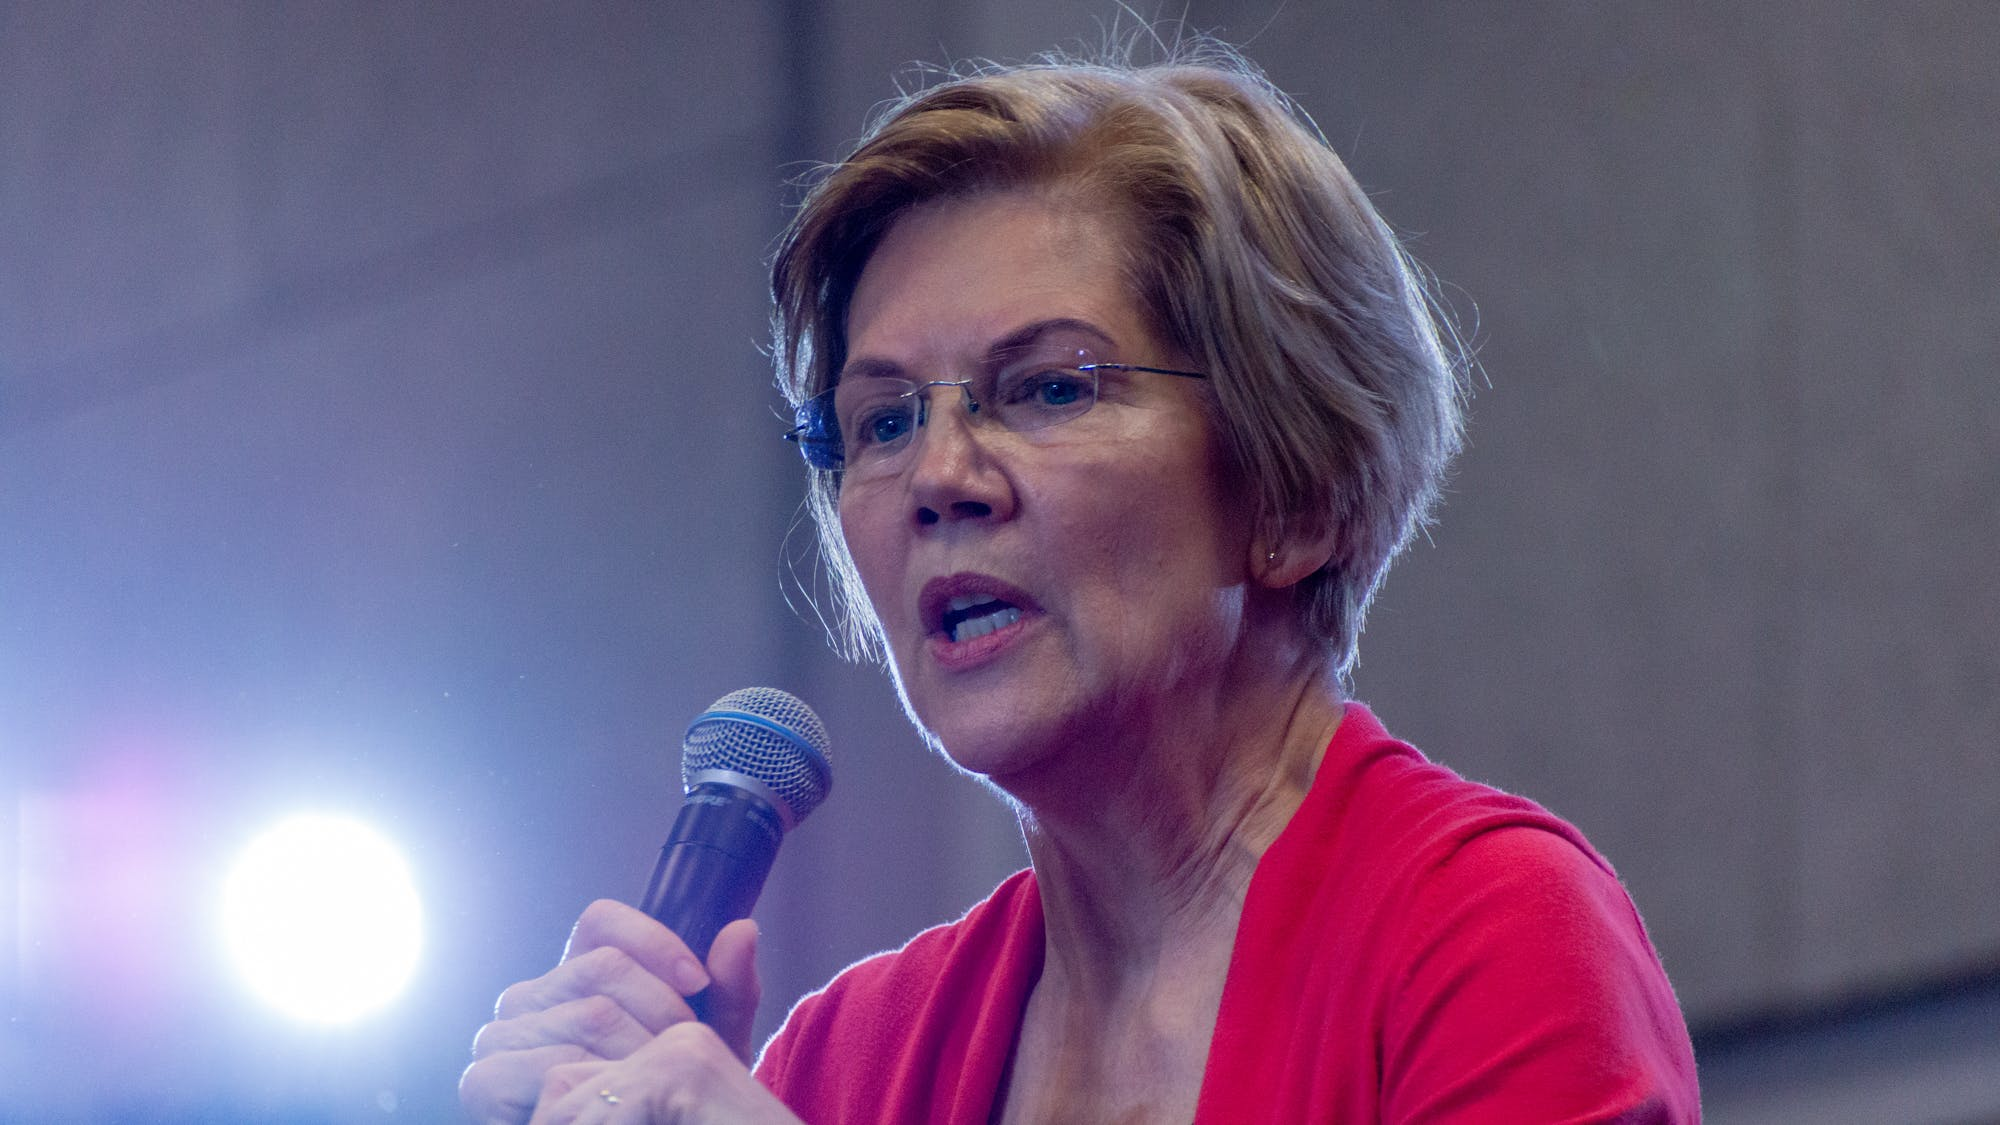 Elizabeth Warren big tech breakup